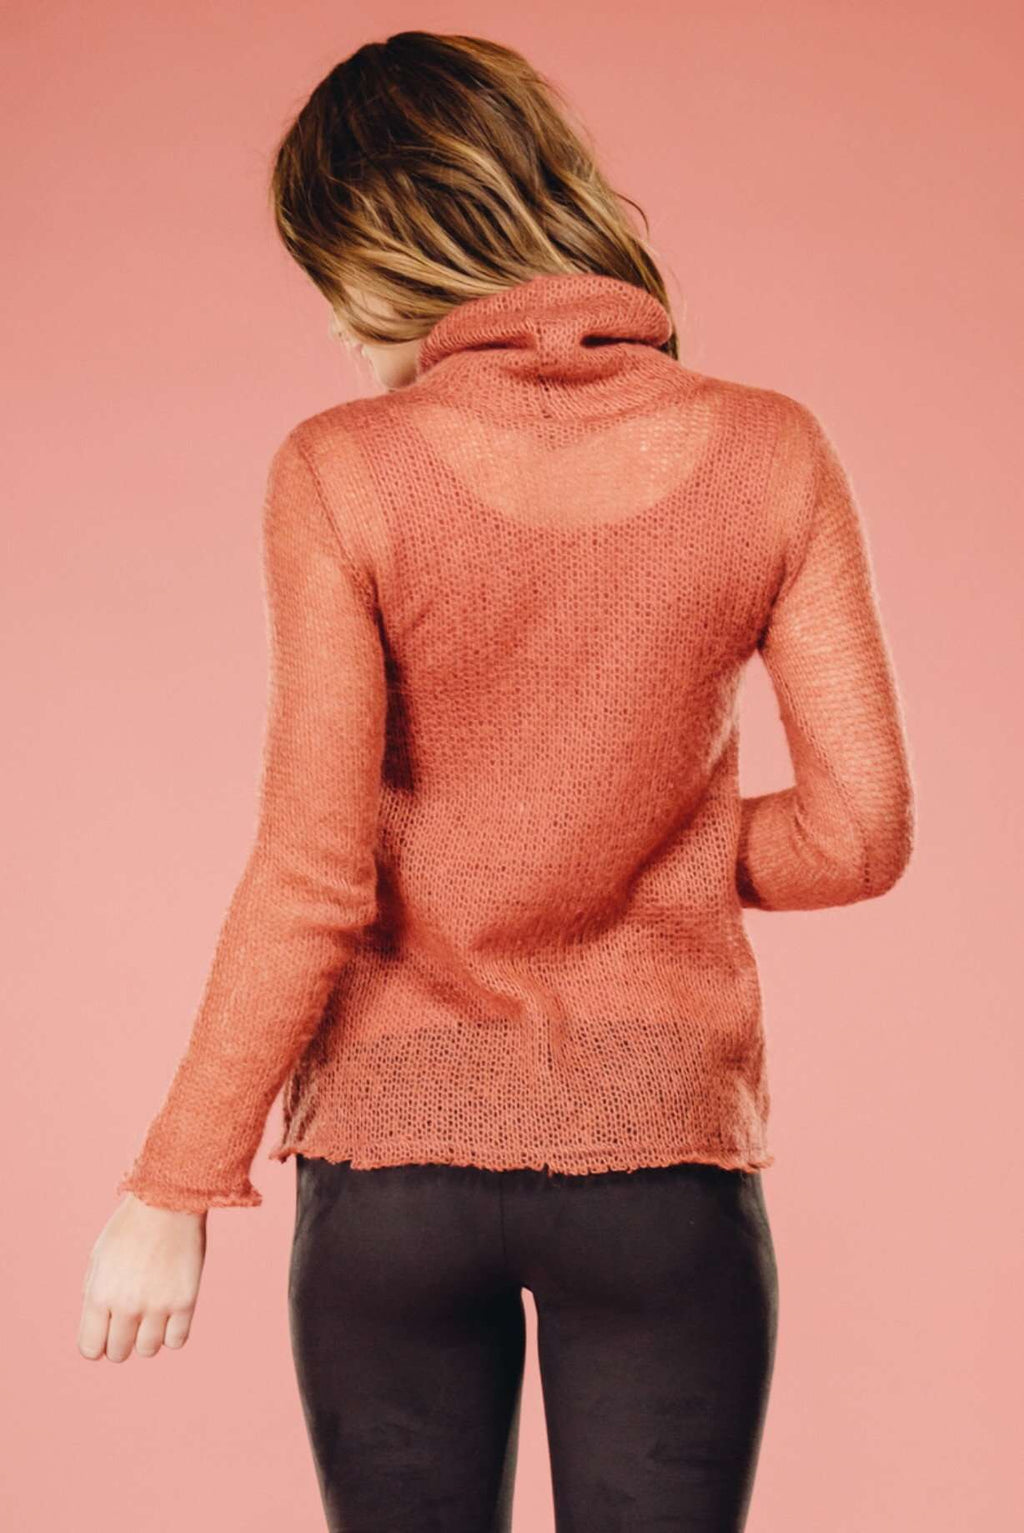 Rose Turtle Neck Top,Sweater